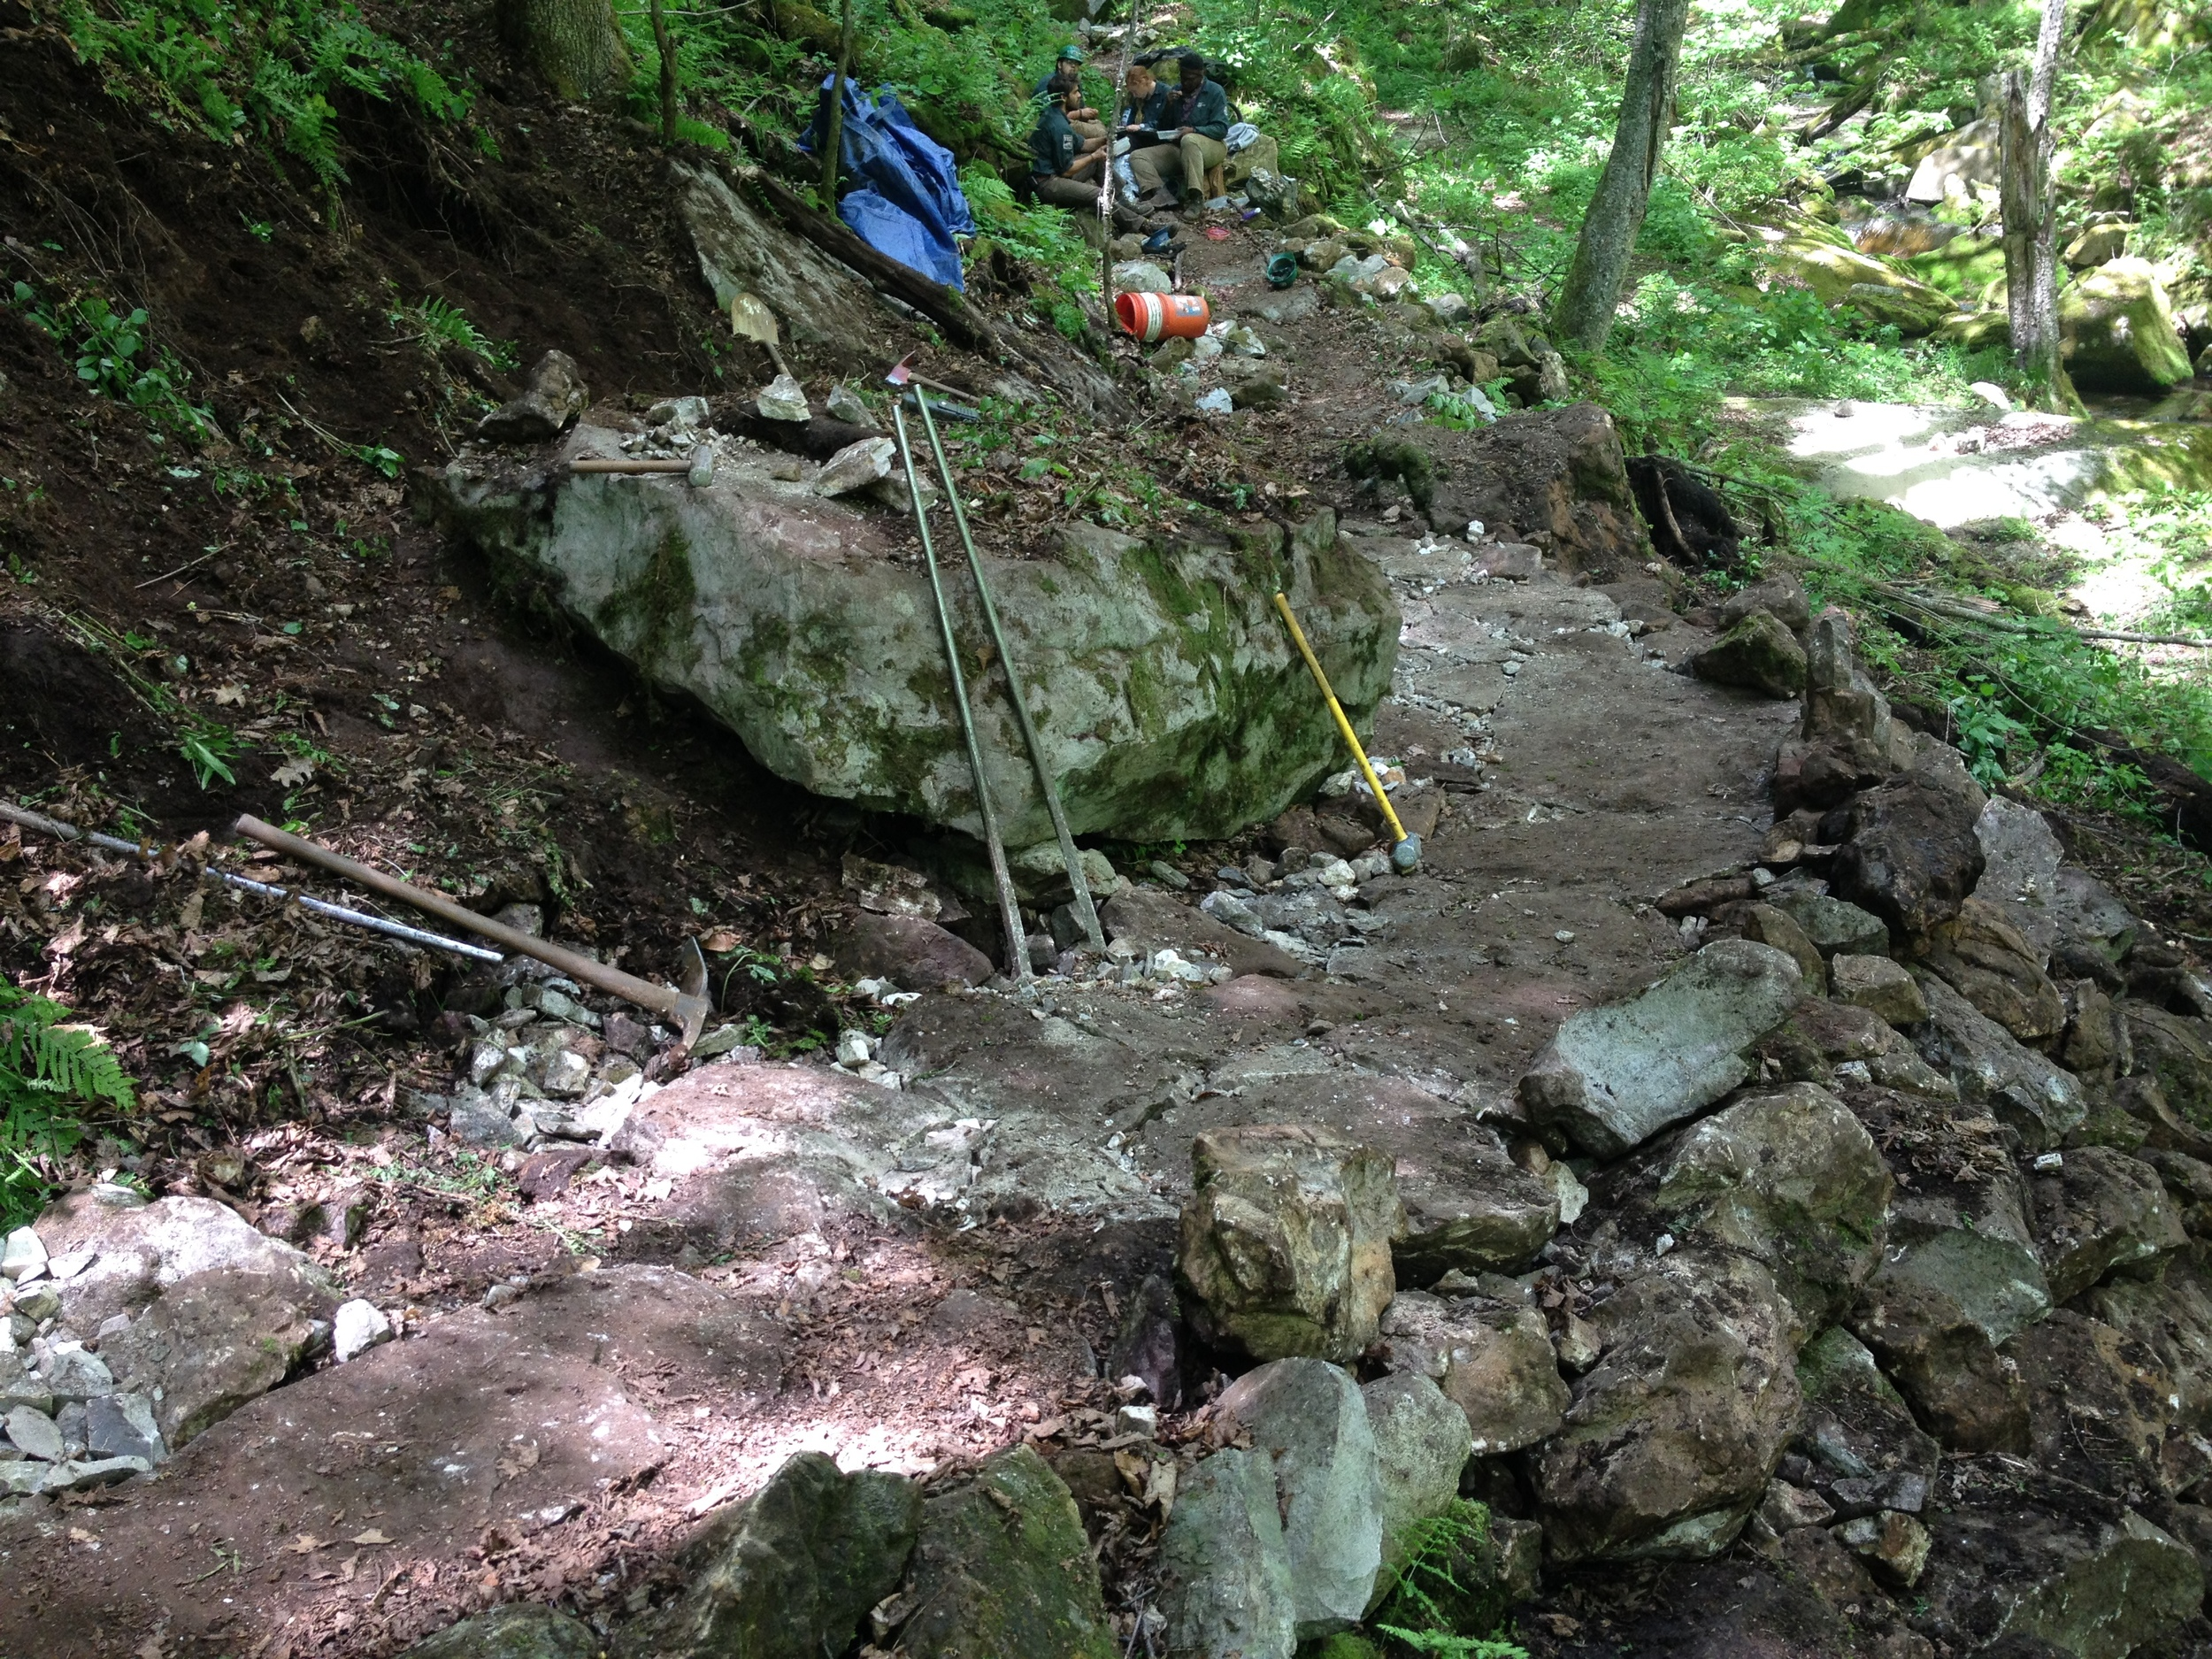 Rock work on Leicester Hollow trail in Green Mountain National Forest.